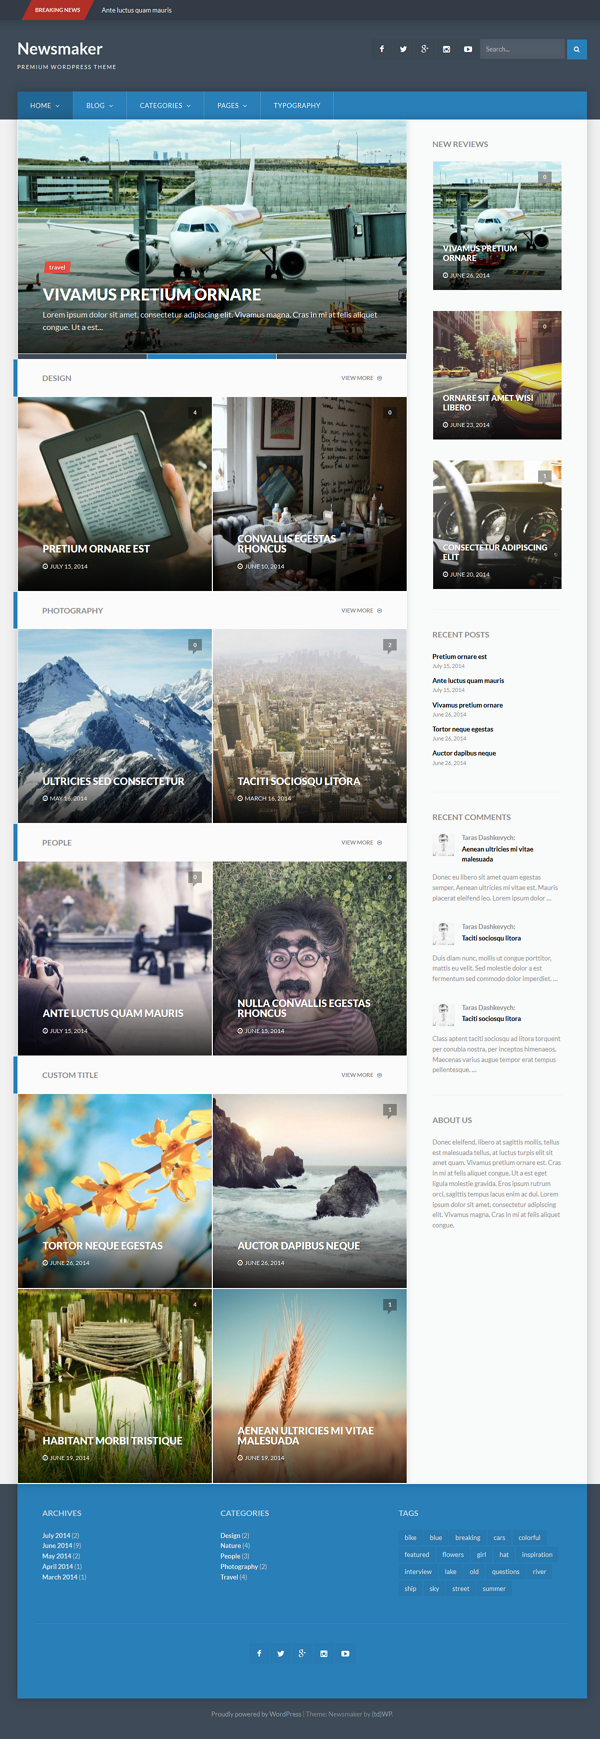 Newsmaker is a fully responsive, clean and elegant WordPress theme that is ideal for personal bl ...